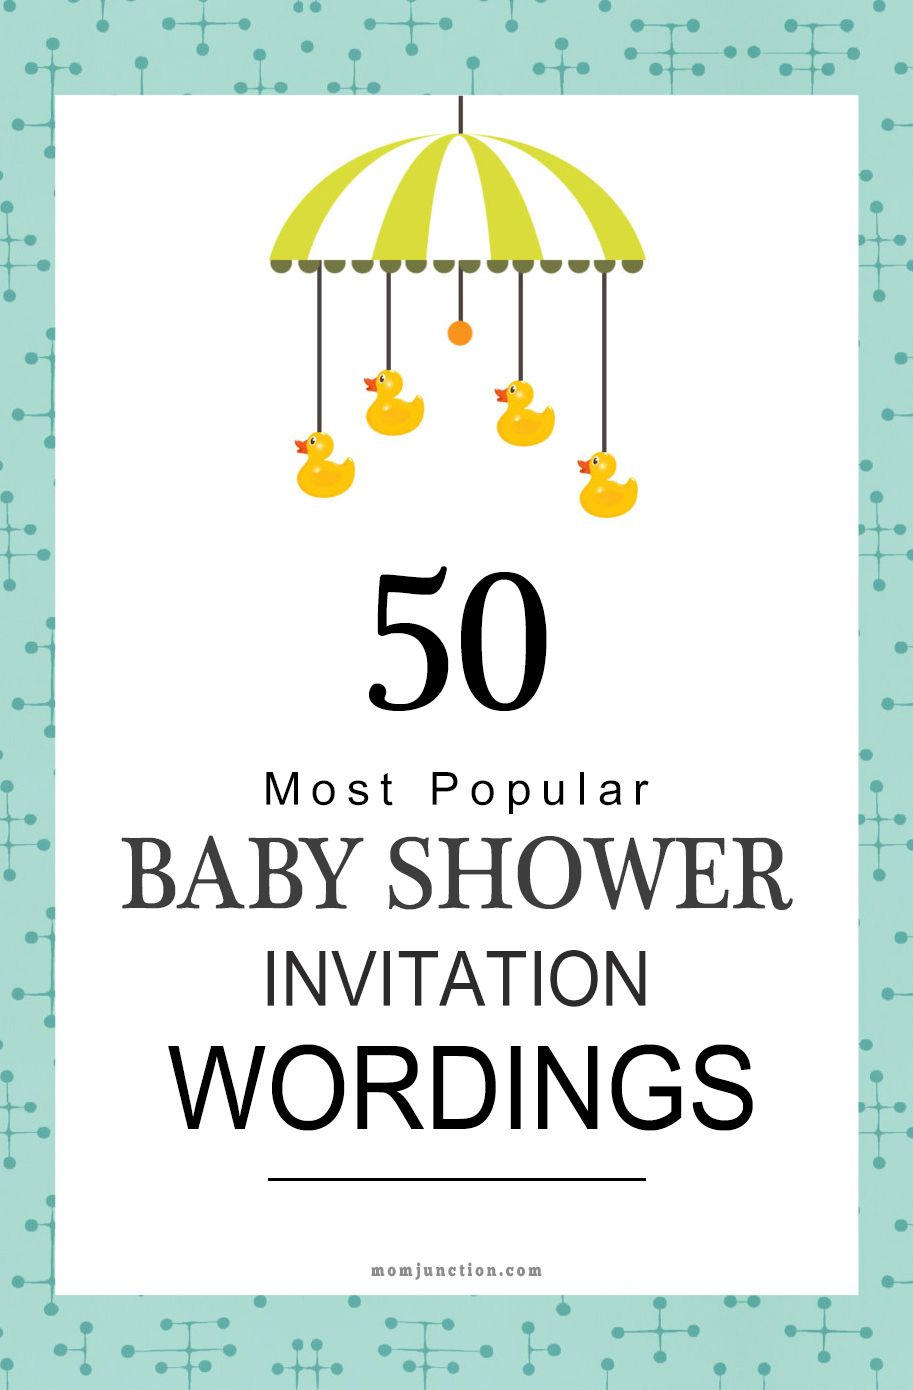 Baby Shower Invitation Wording Is Easy To Find 50 Most Popular Baby Shower Invitation Wordings: Momjunction will help you  find the right words to create a memorable and fun invitation to welcome  the baby ...